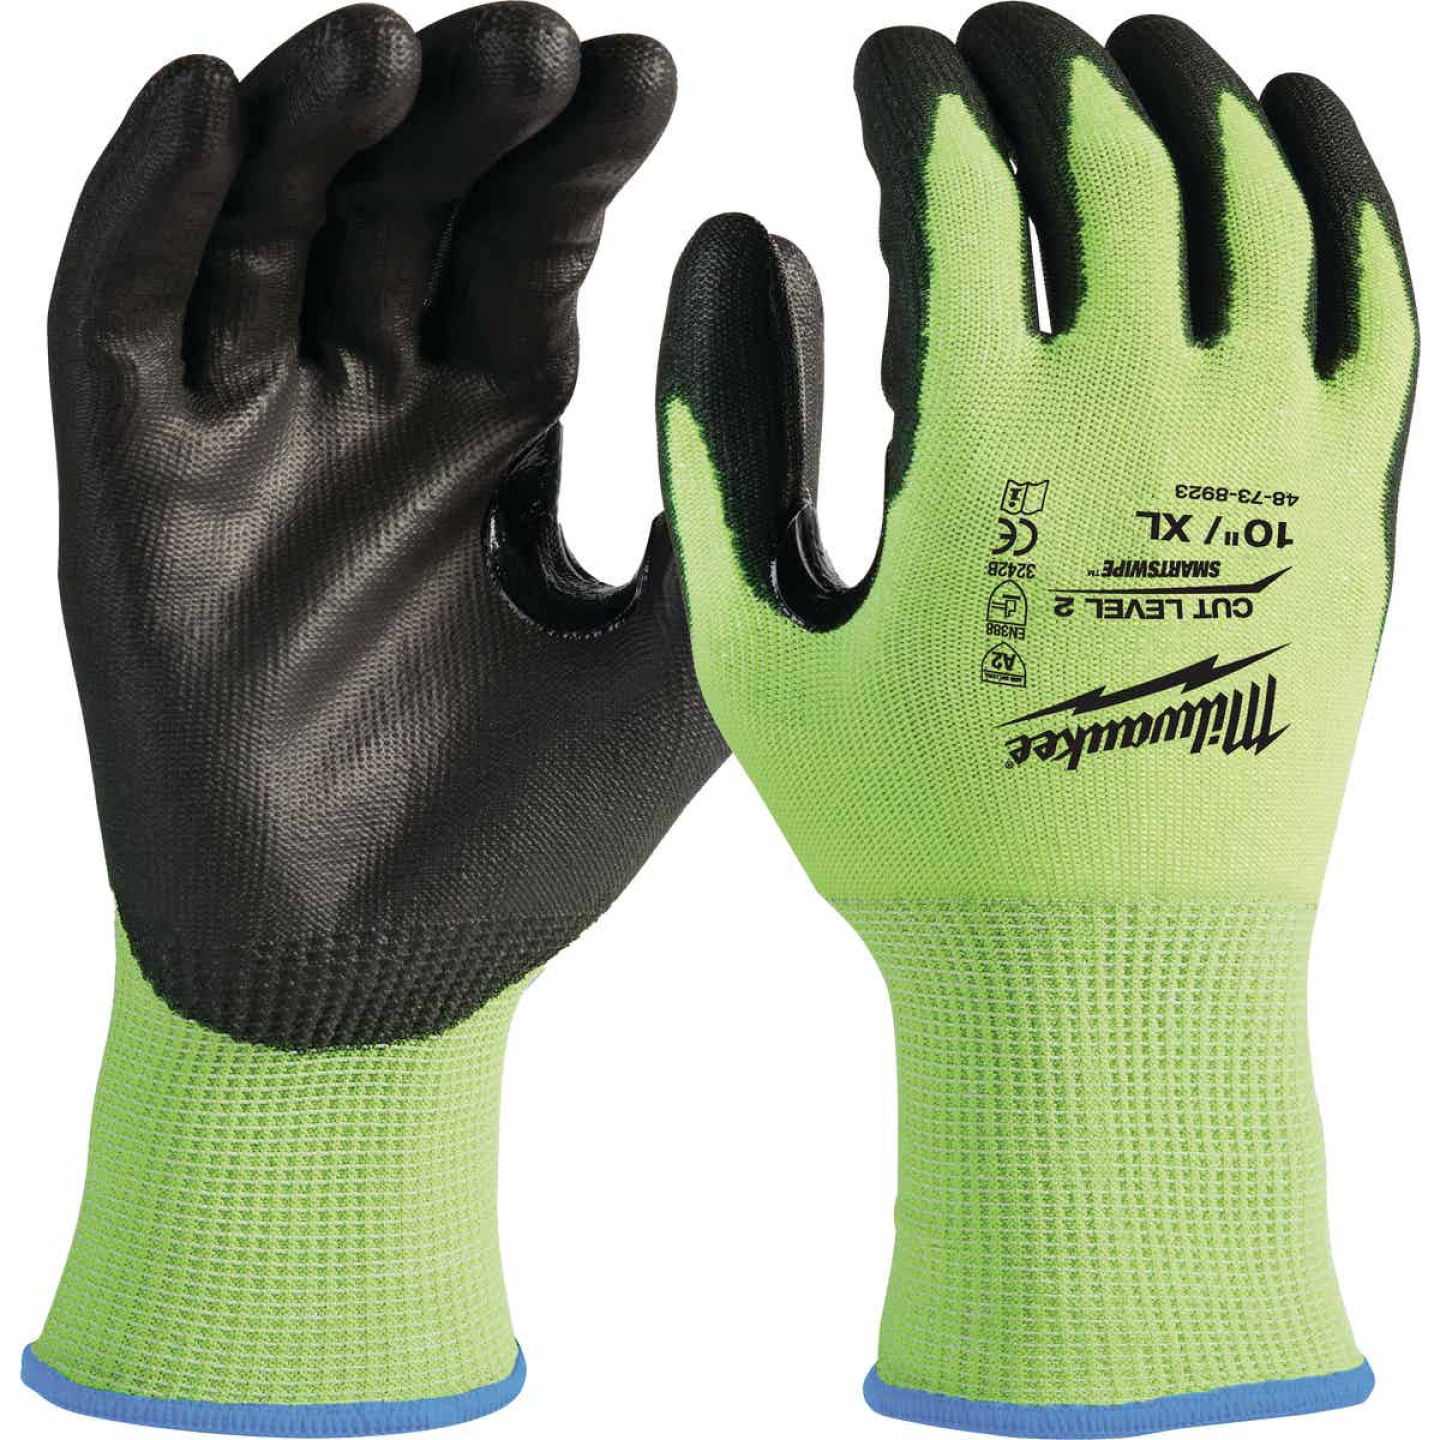 Milwaukee Men's XL Cut Level 2 High Vis Nitrile Dipped Glove Image 1